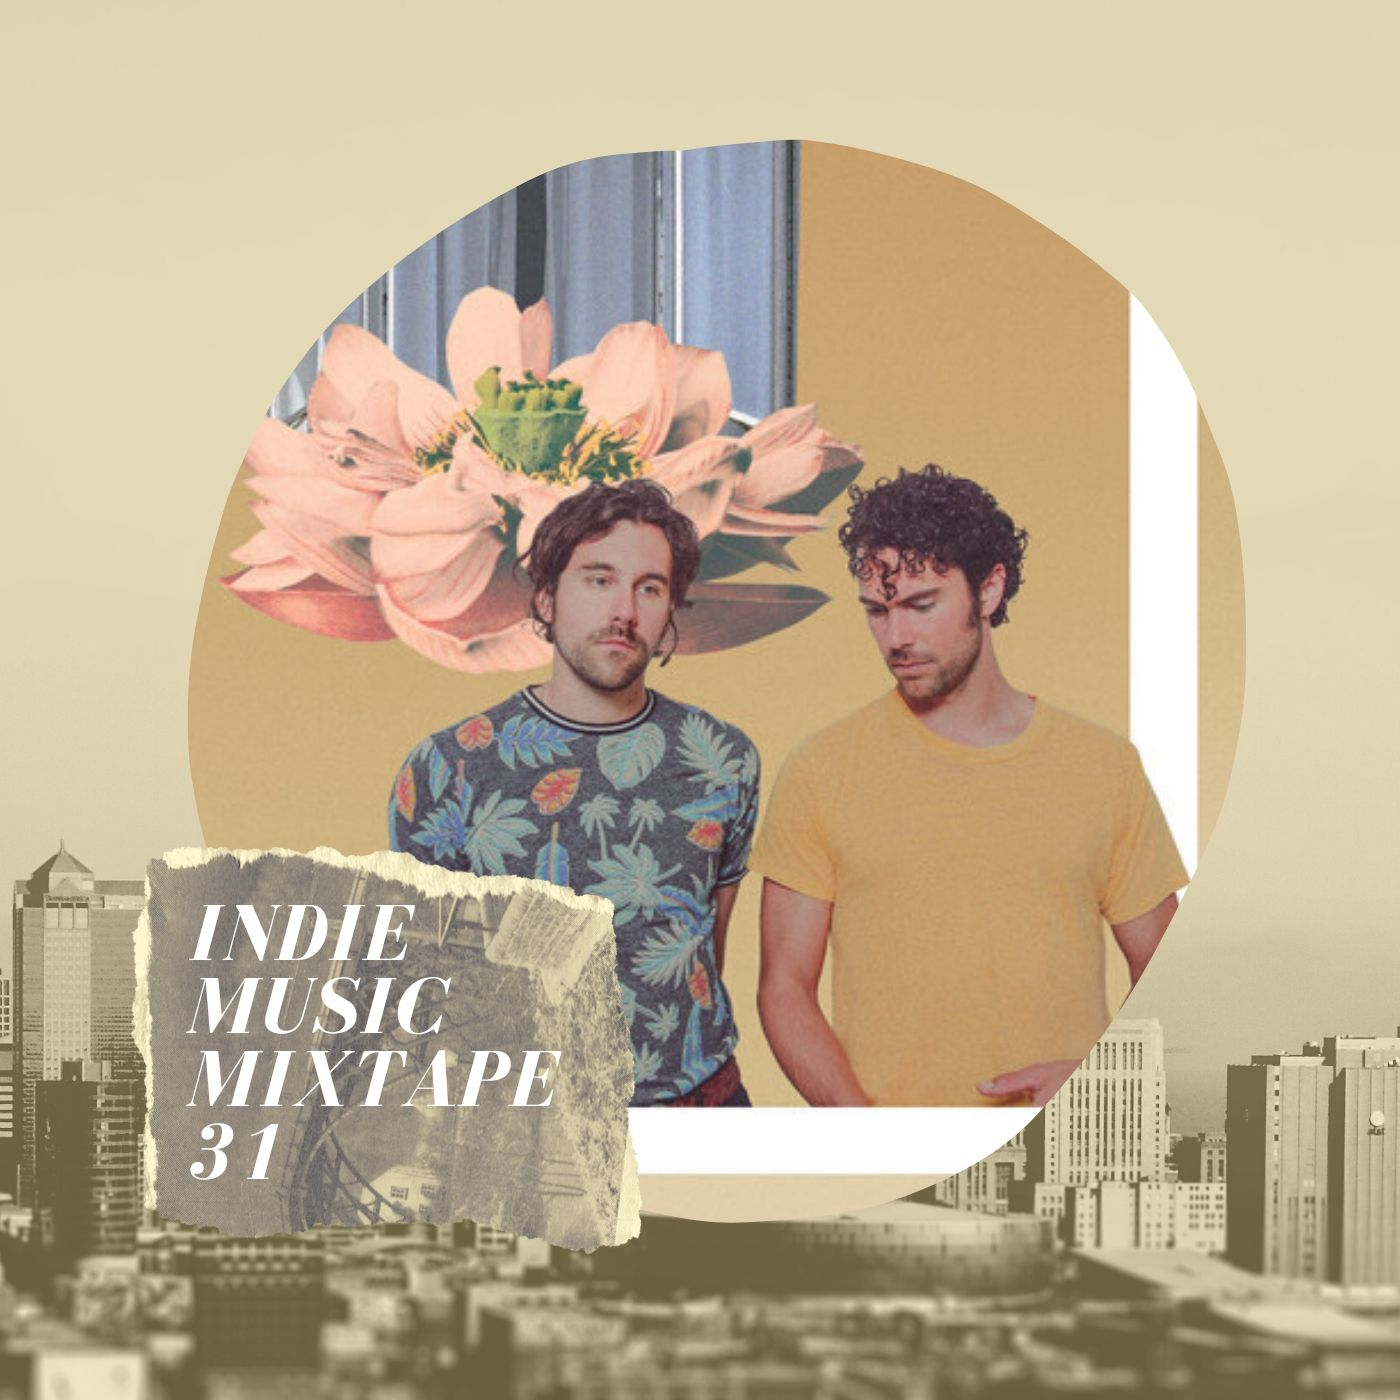 indie music mixtape 31 - indie - indie music - indie pop - indie rock - indie folk - music - music blog - wolf in a suit - wolfinasuit - wolf in a suit blog - wolf in a suit music blog